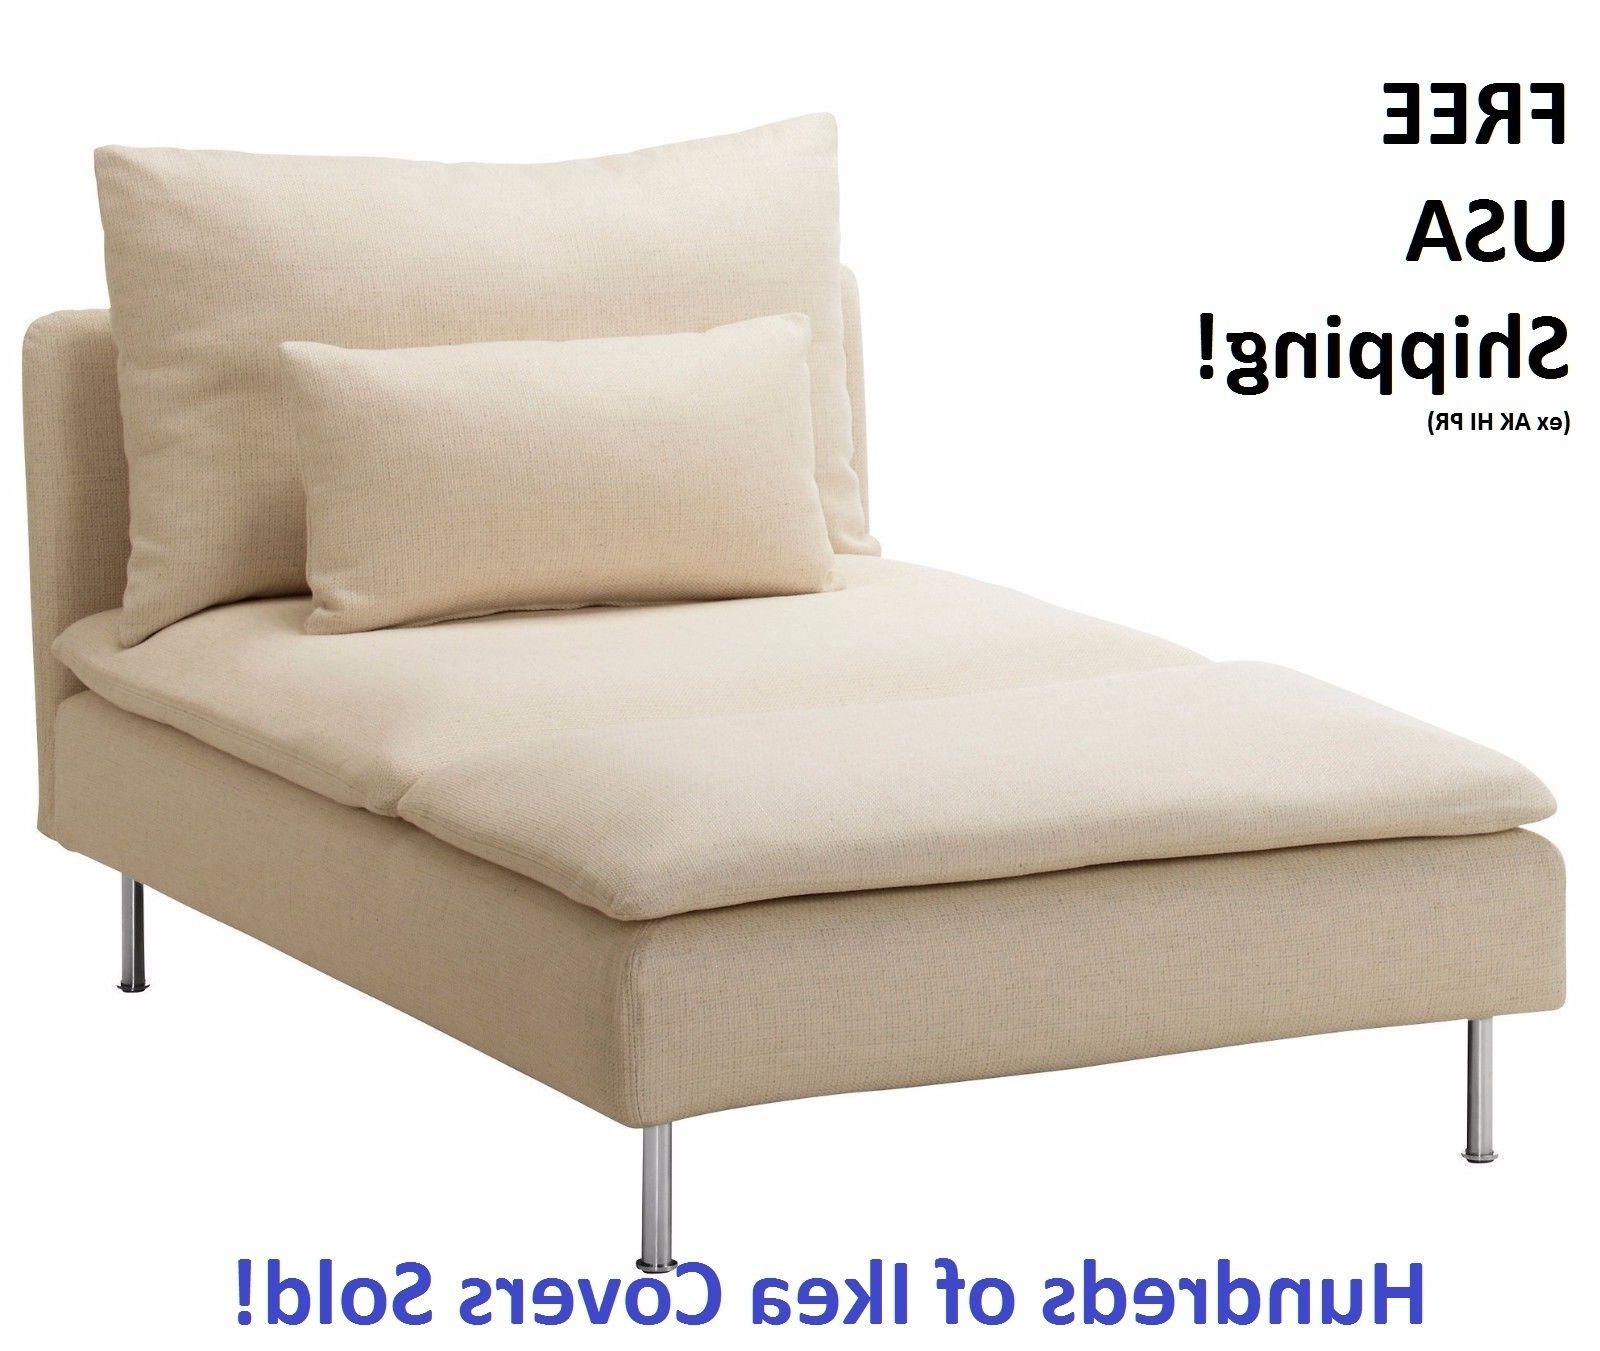 Ebay Intended For Popular Indoor Chaise Lounge Slipcovers (View 5 of 15)